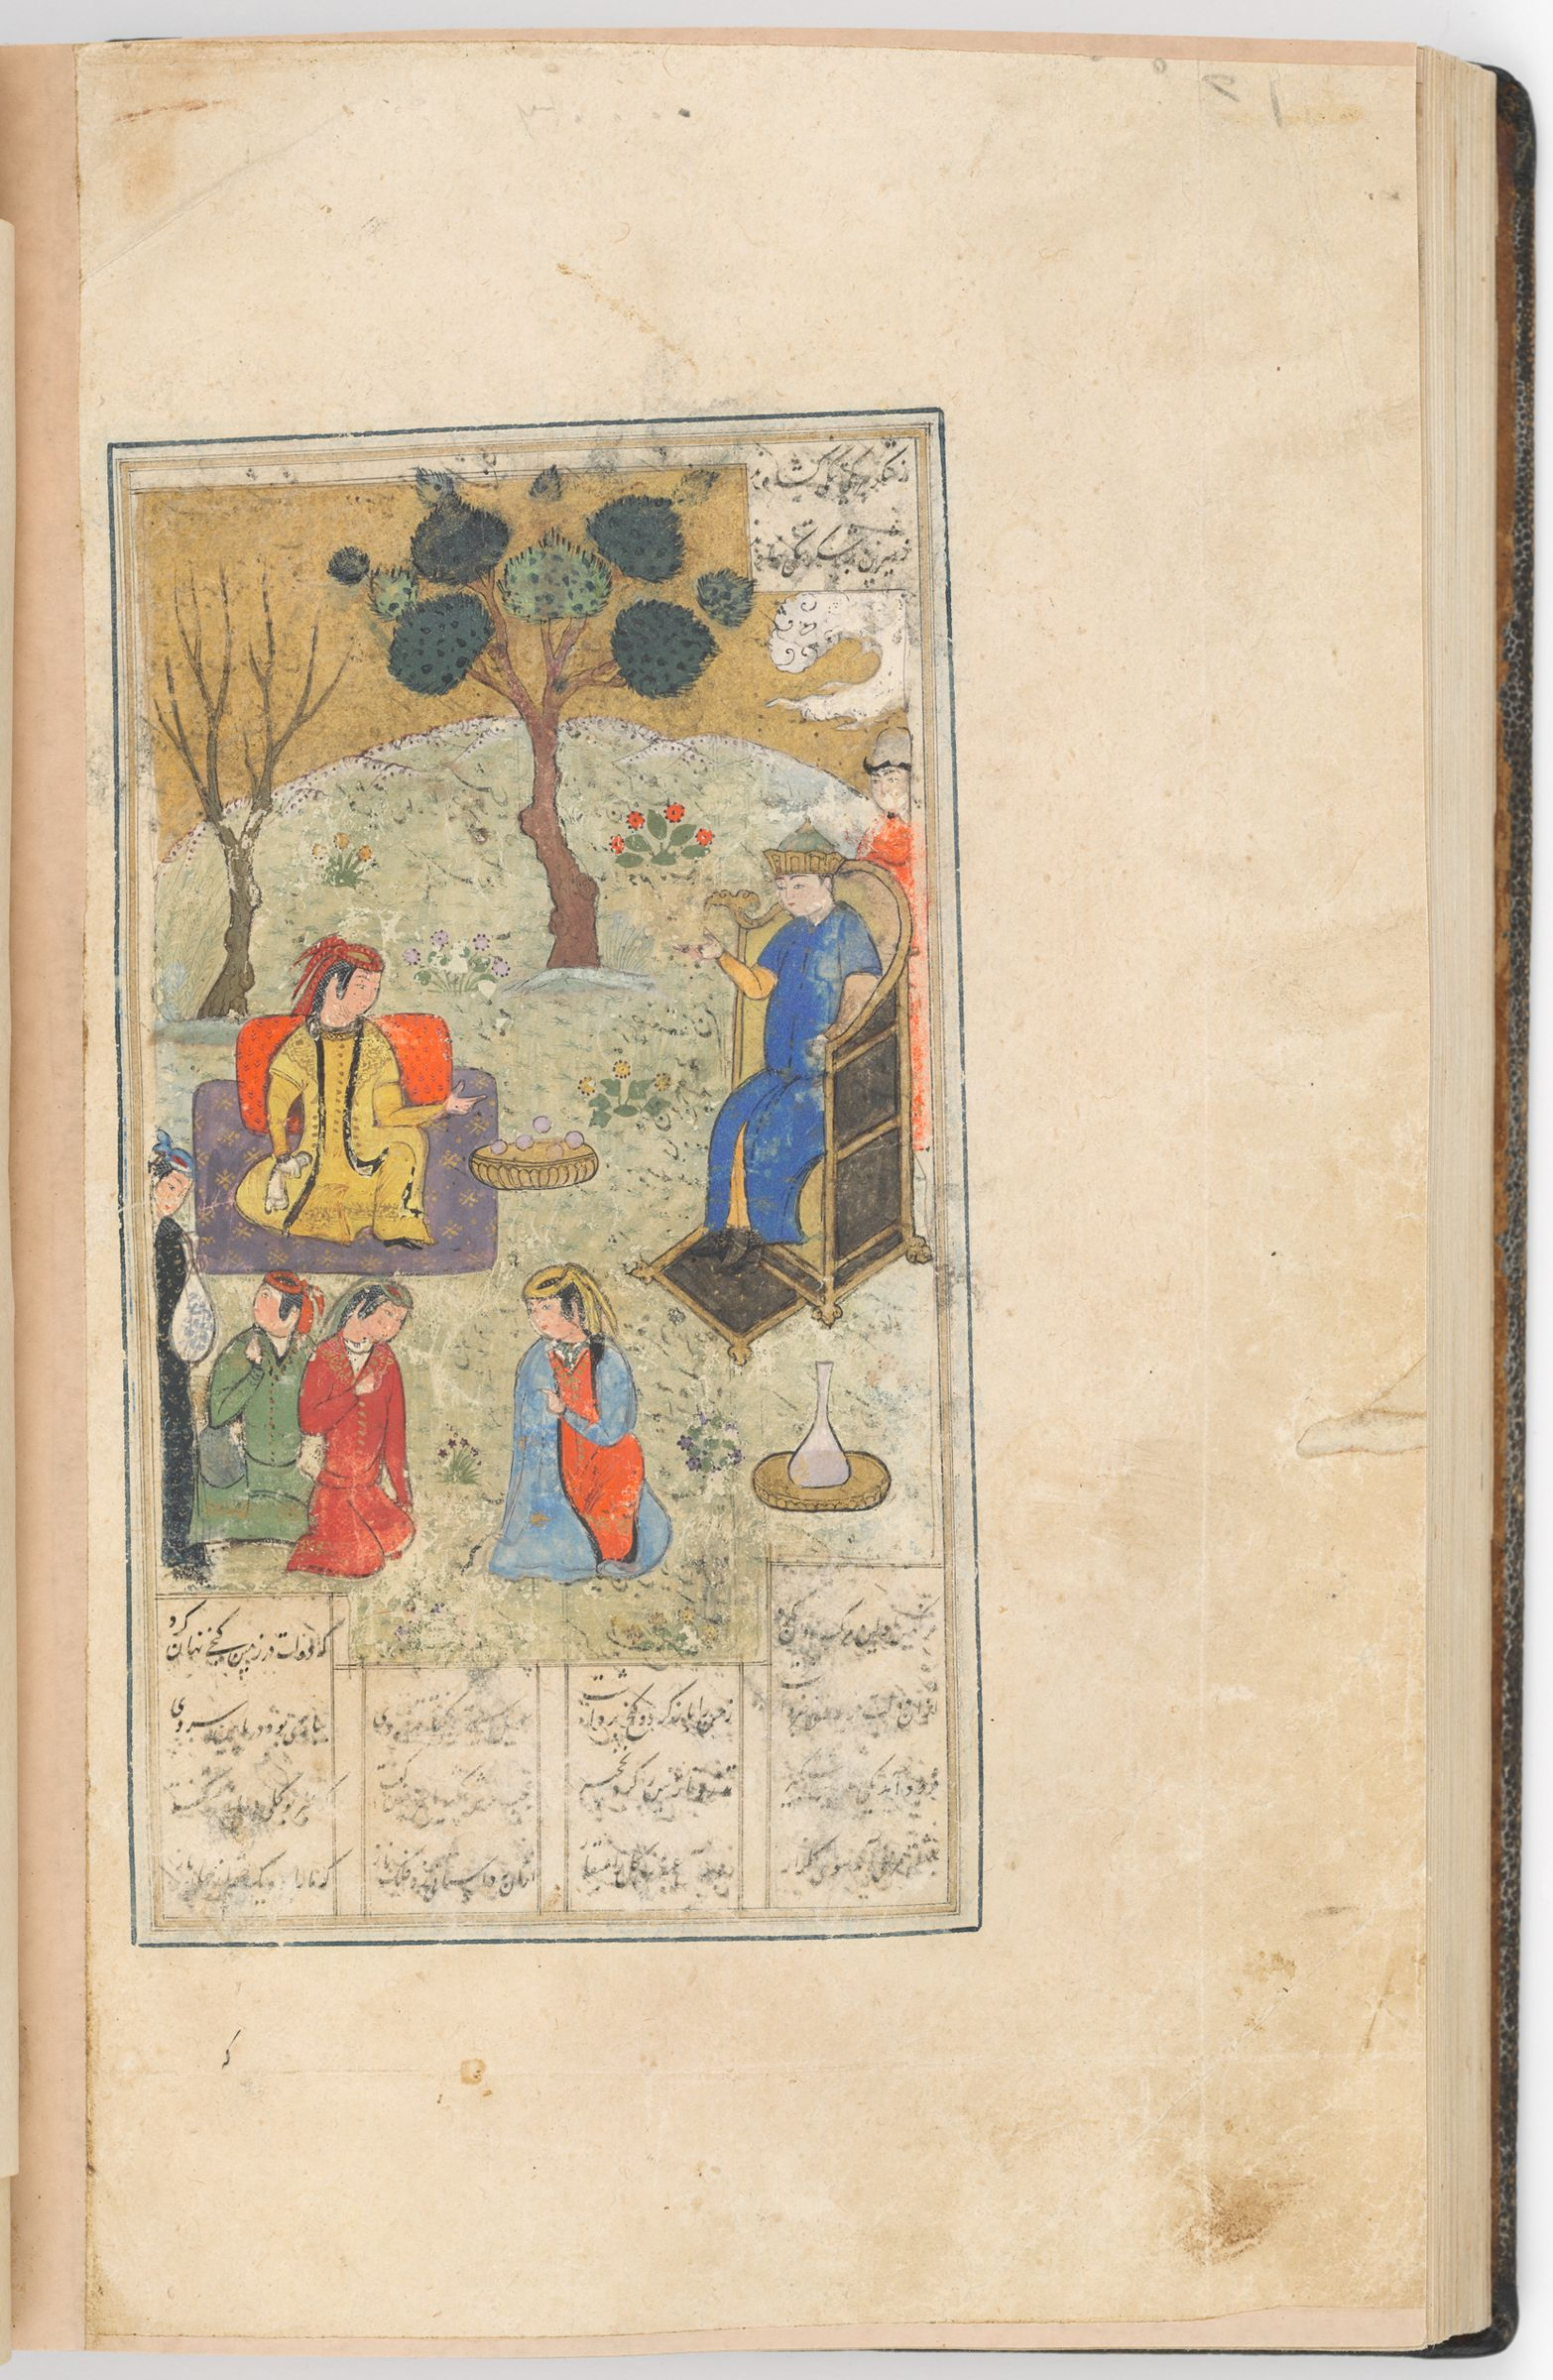 Khusraw, Shirin, Shapur And The Girls Telling Stories (Text Recto; Painting Verso Of Folio 165), Painting From A Manuscript Of The Khamsa By Nizami